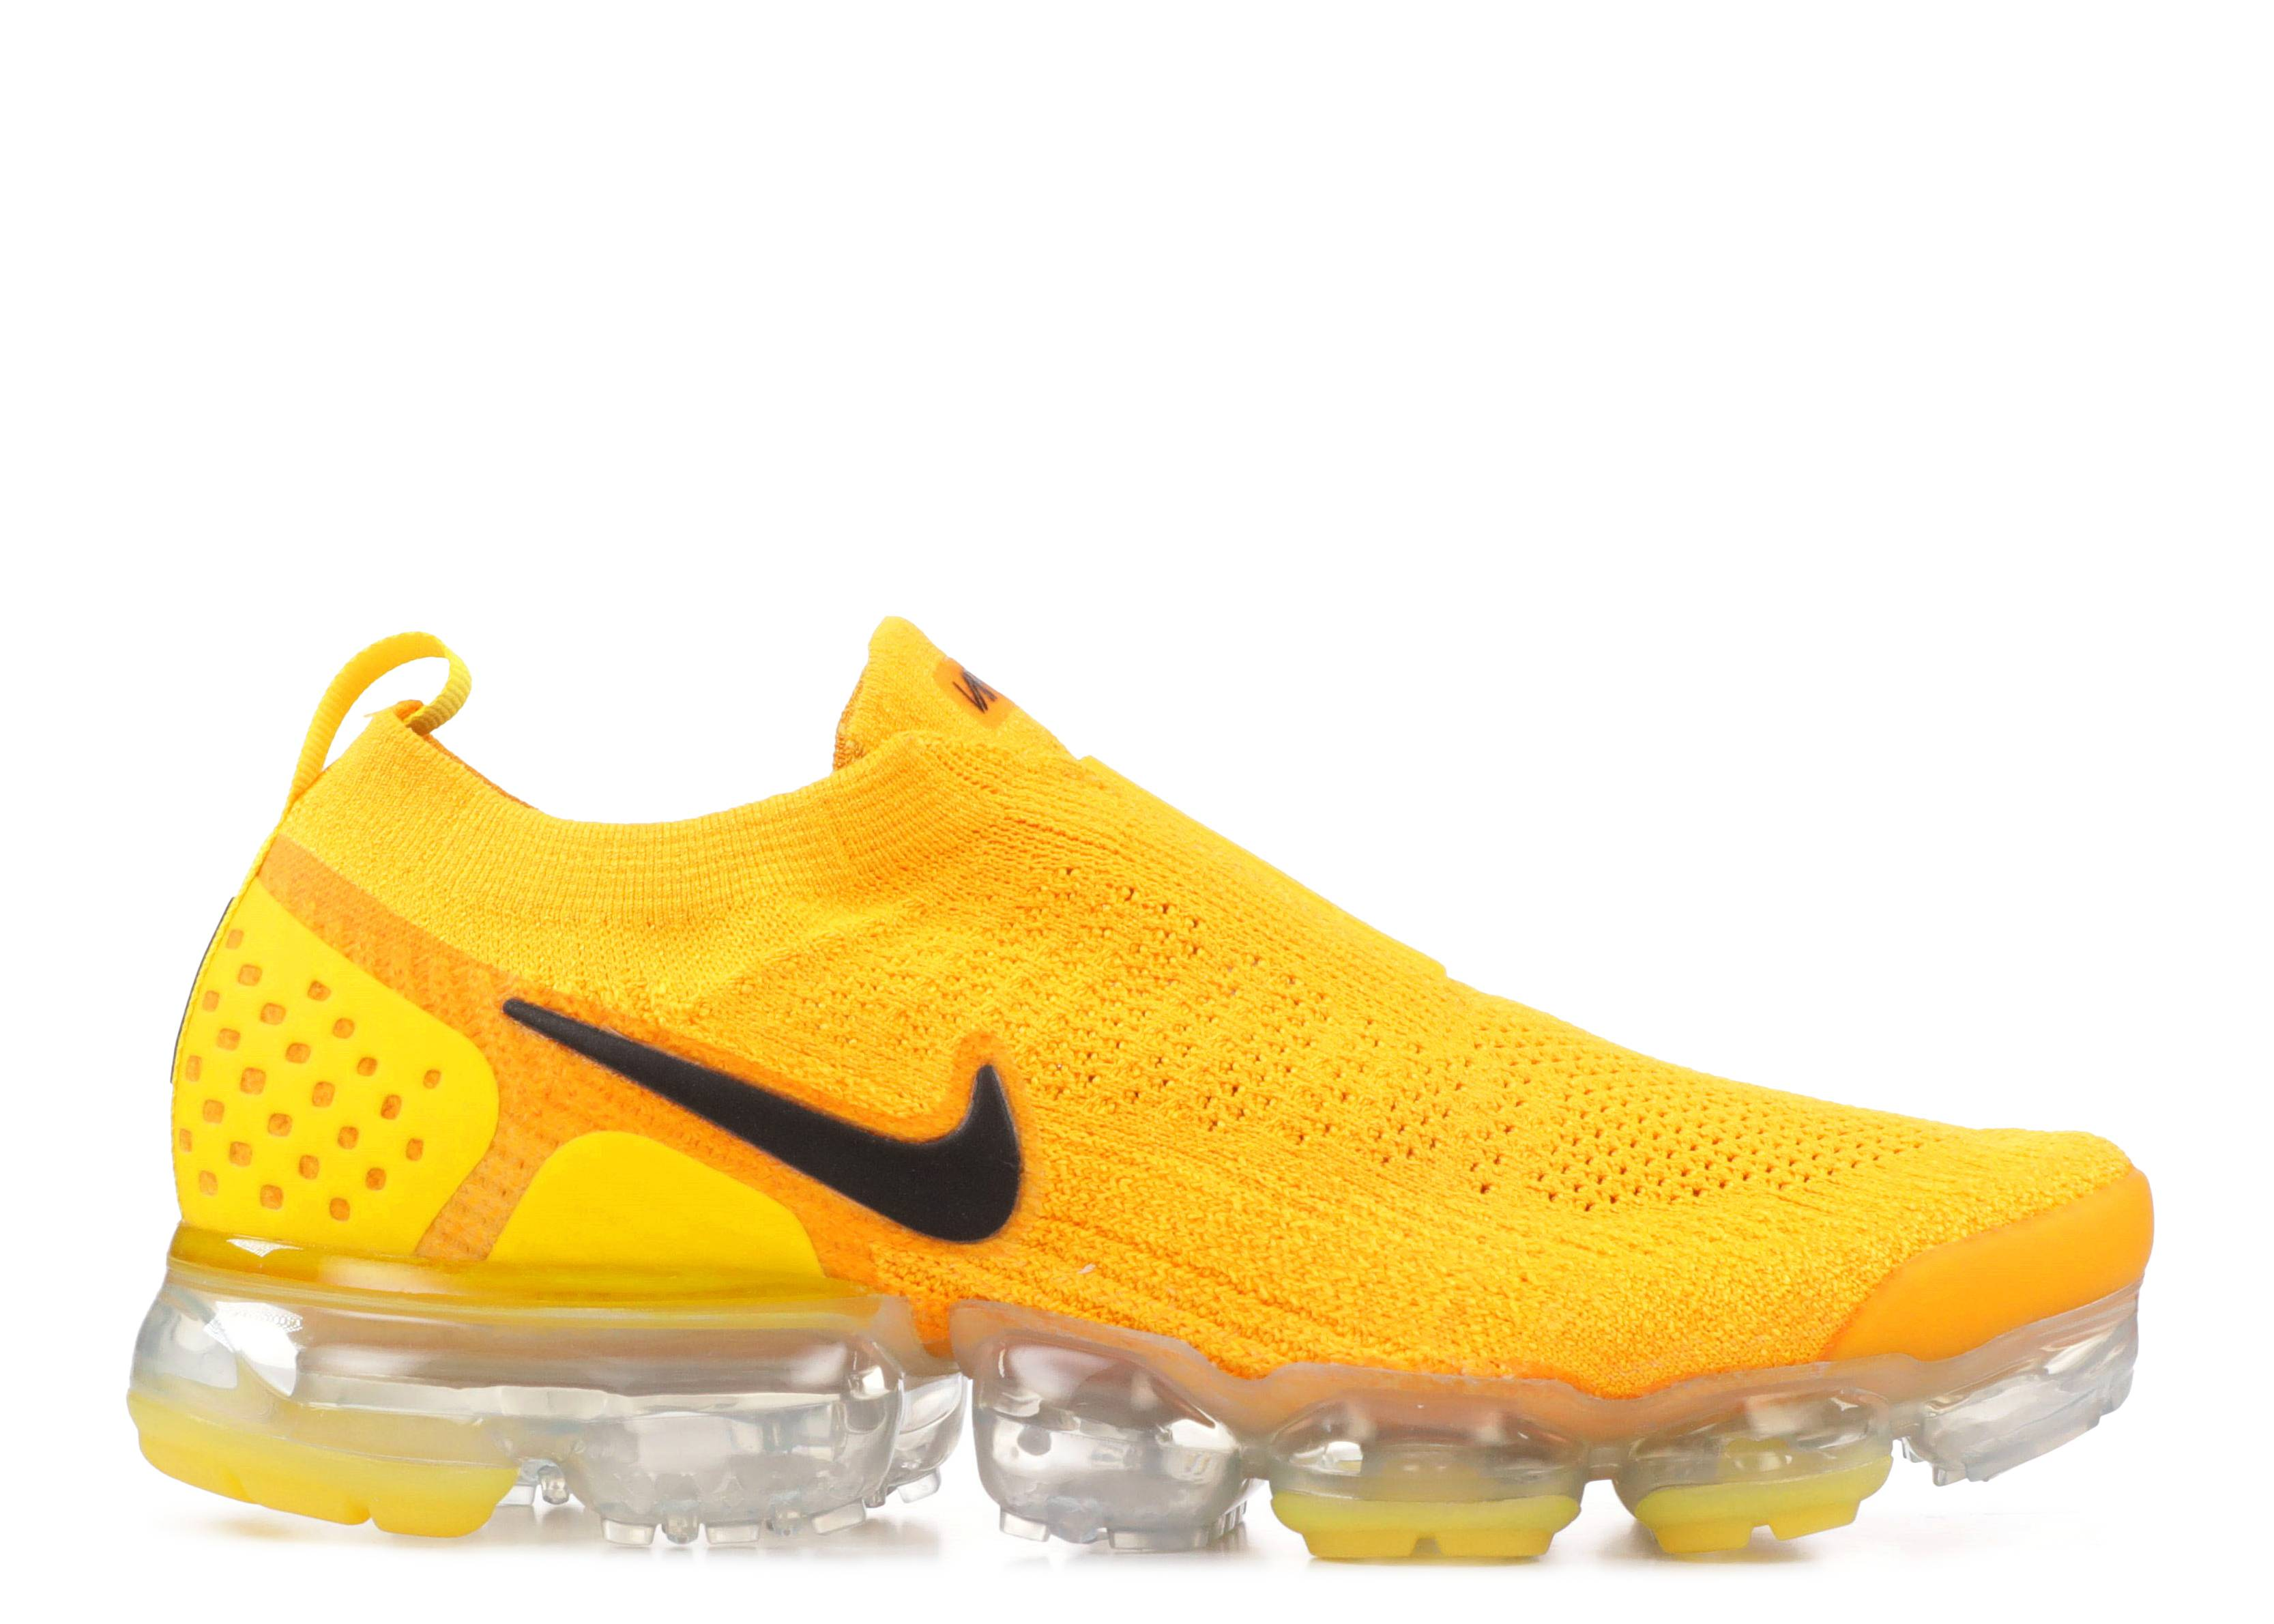 wmns air vapormax fk moc 2 nike aj6599 700 university gold